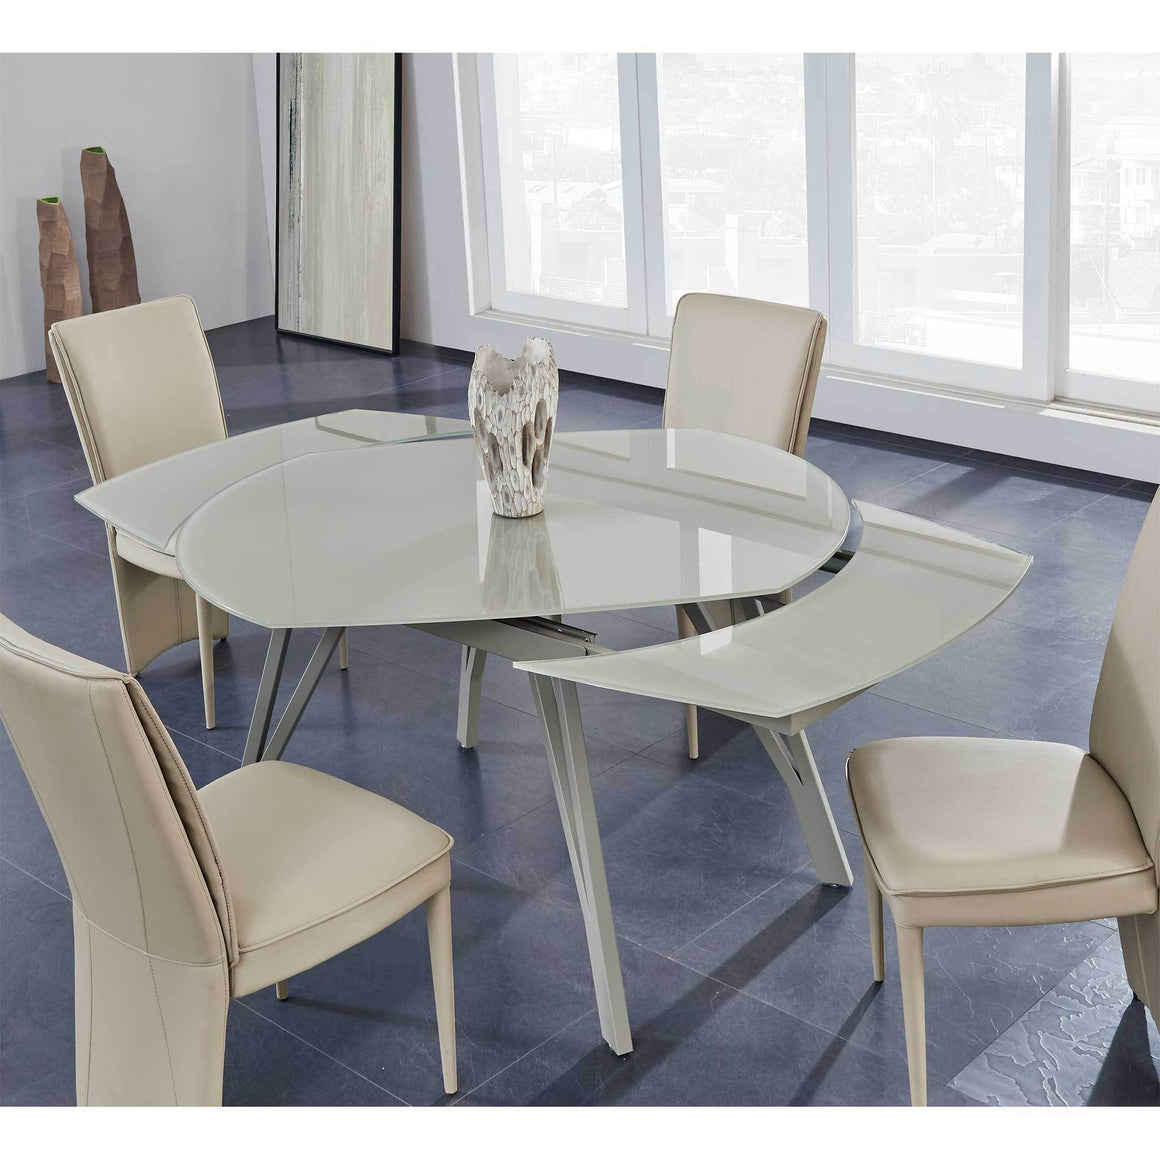 D2177DT W/D6605DC-TAUPE  DINING SET